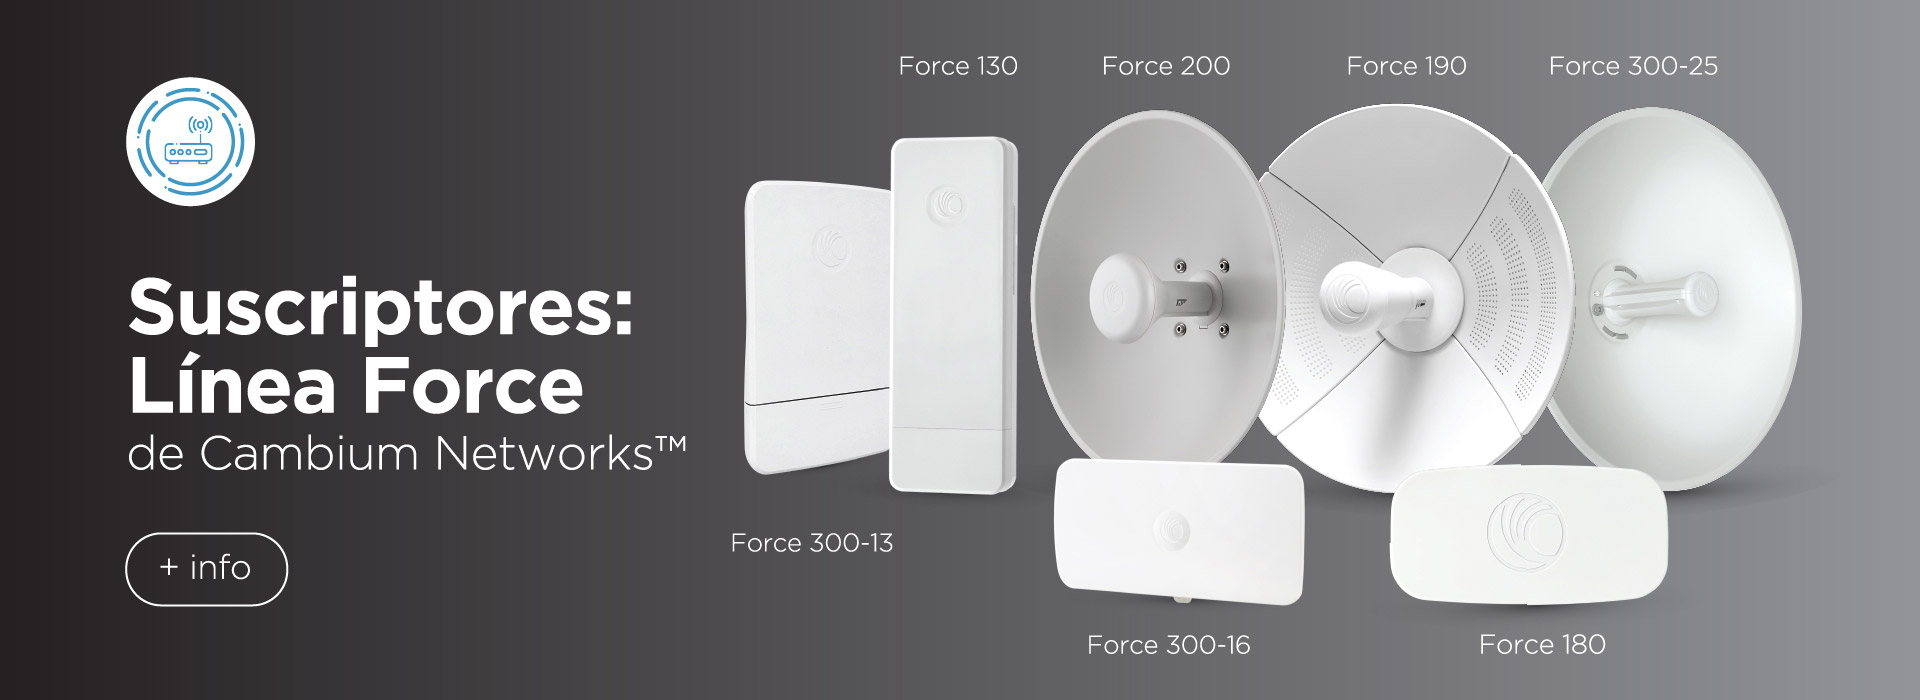 ss_banner_Force_01